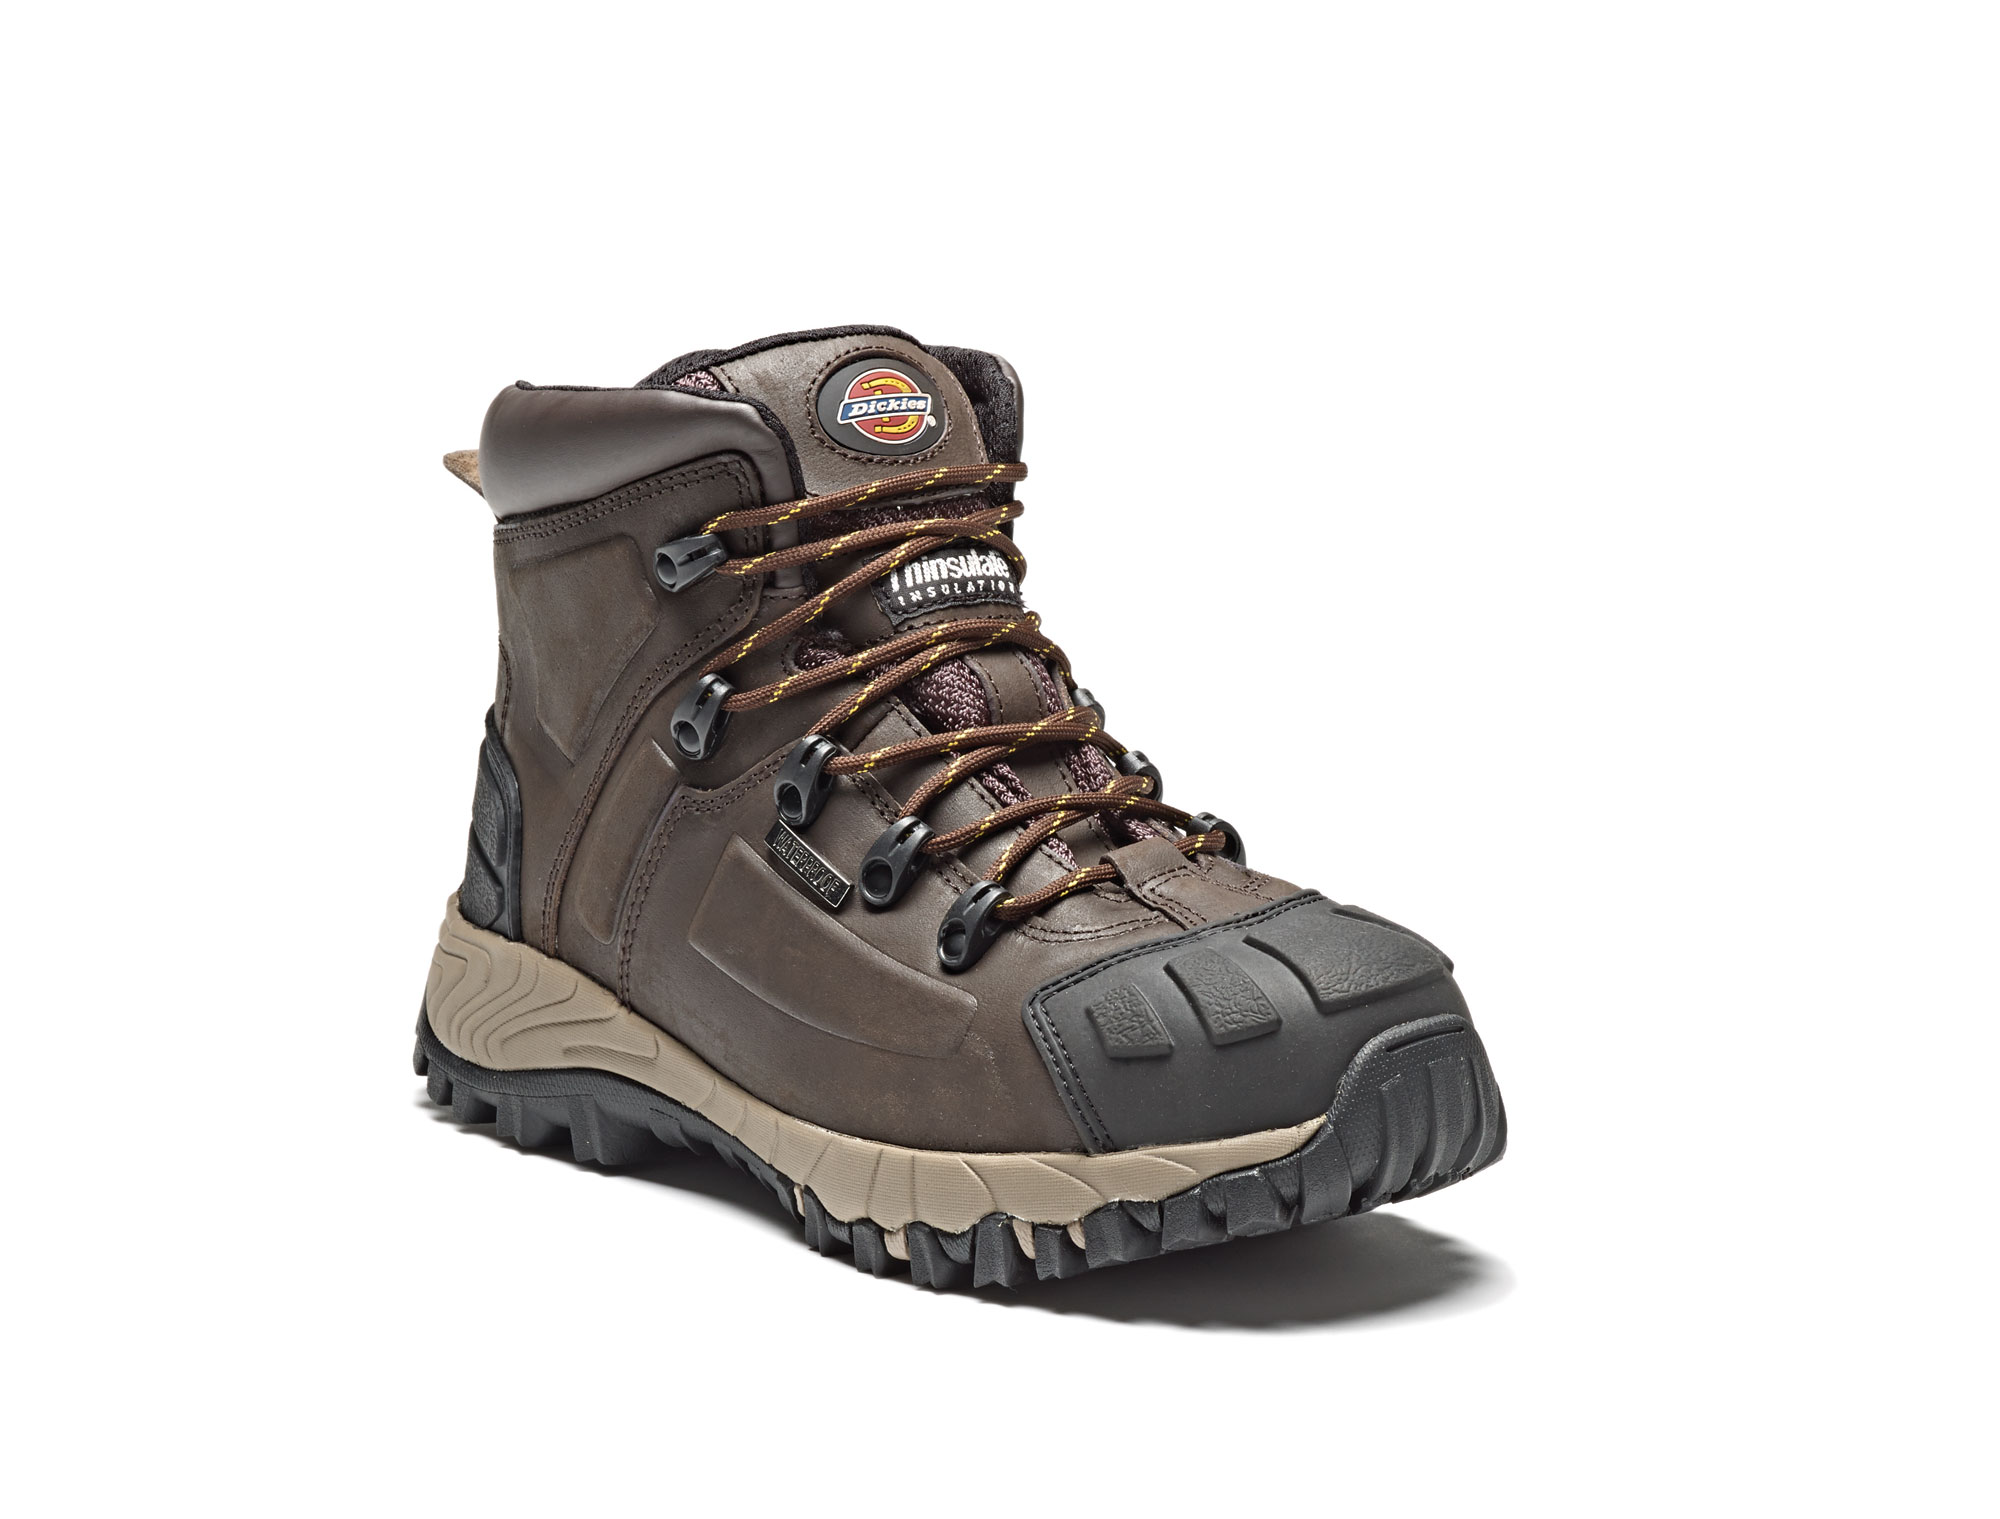 6f55950dca8 Details about Dickies Medway S3 Safety Work Boots Brown Steel Toecap &  Midsole Waterproof